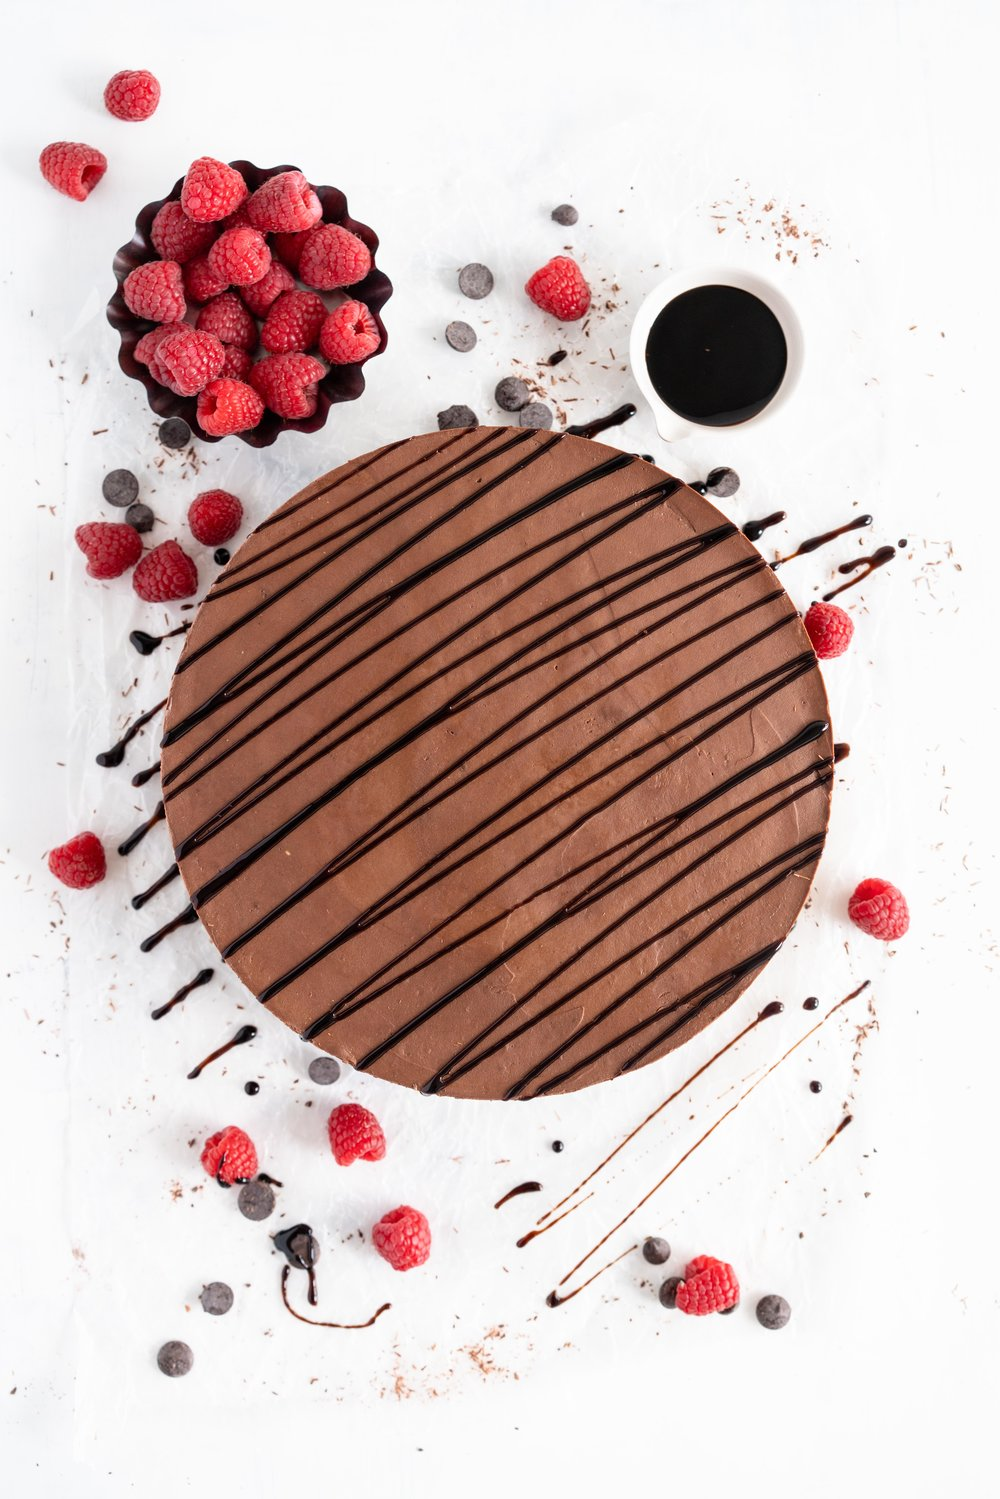 No Bake Chocolate Cheesecake - a chocolate graham cracker base is topped with a silky, no bake chocolate cheesecake filling, and finished with a drizzle of sweet, sticky raspberry balsamic glaze. This dessert comes together quickly, and is perfect for feeding a crowd. #cheesecake #chocolatecheesecake #nobakecheesecake